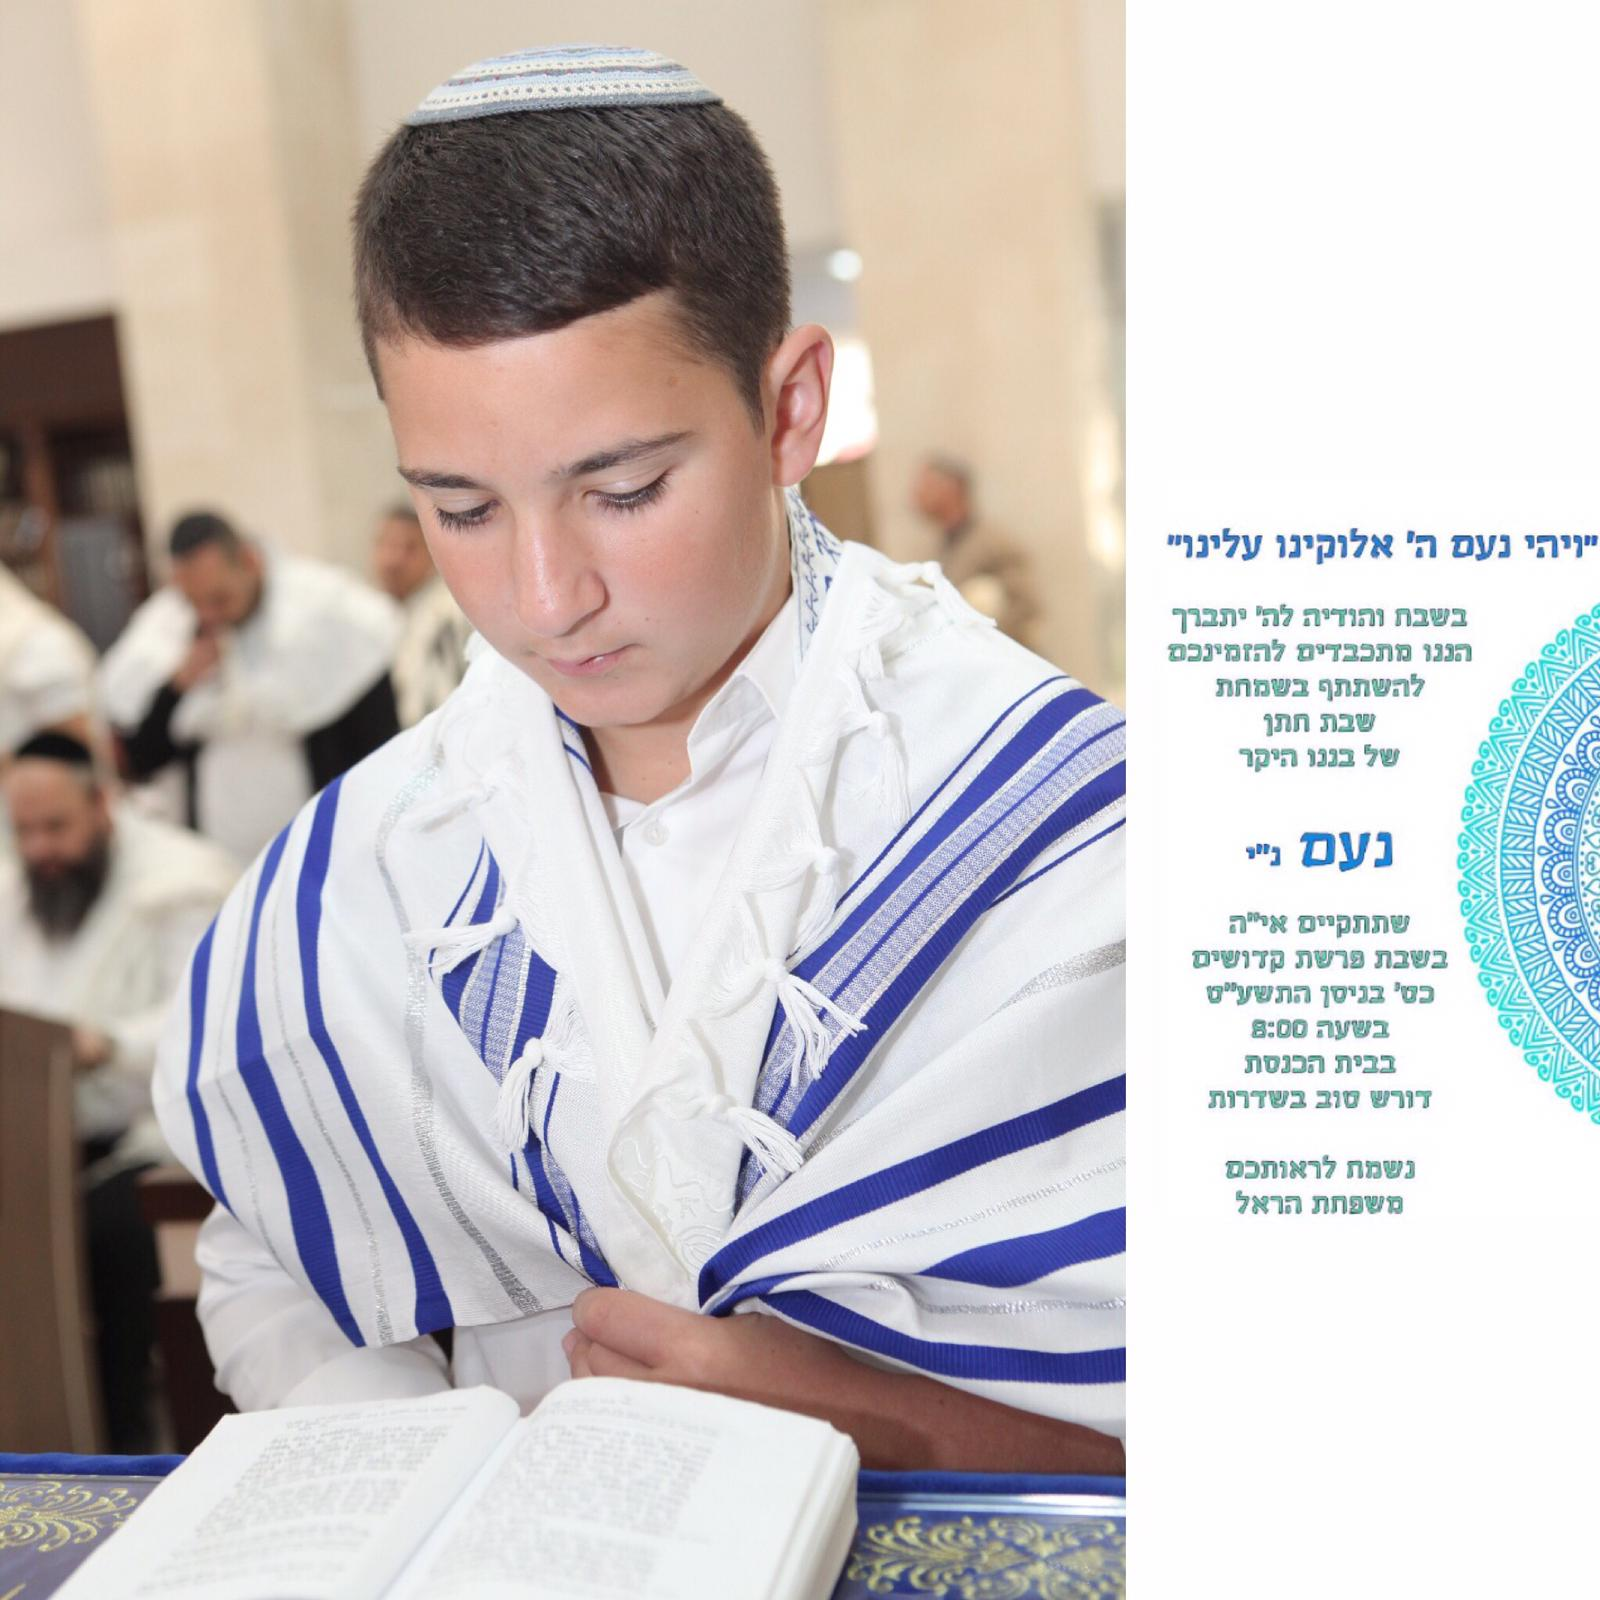 My Son's Bar Mitzvah, Under Fire